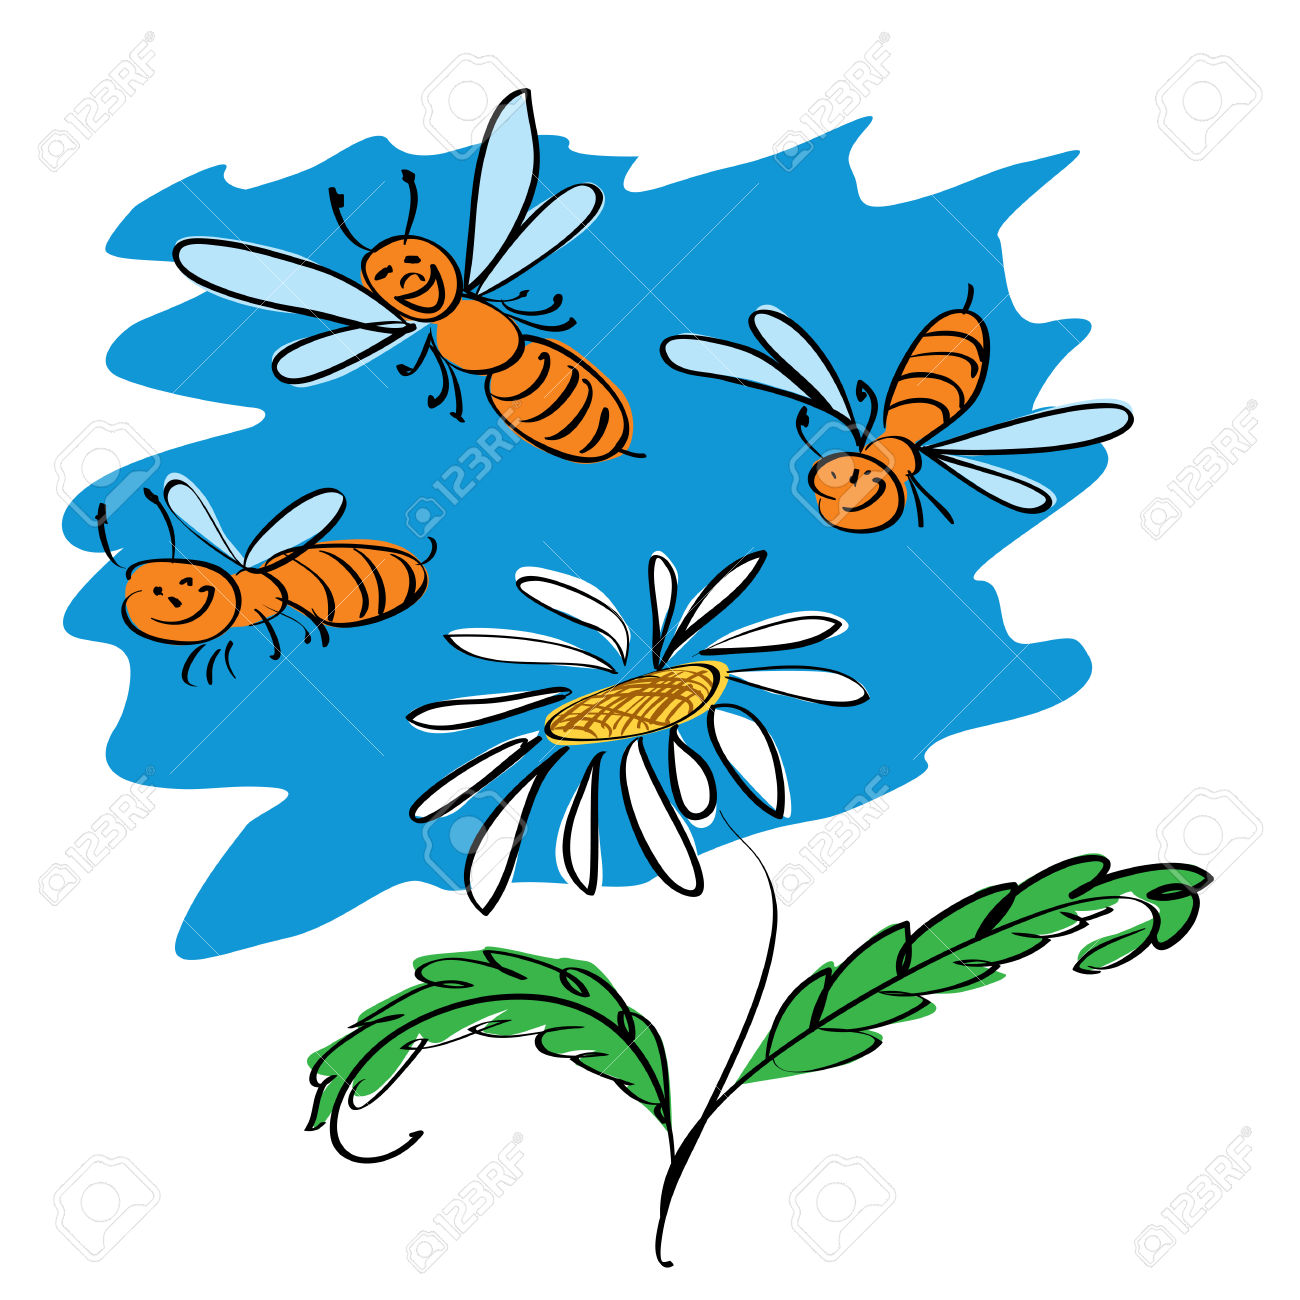 Funny Bees Fly Over Flower Royalty Free Cliparts, Vectors, And.